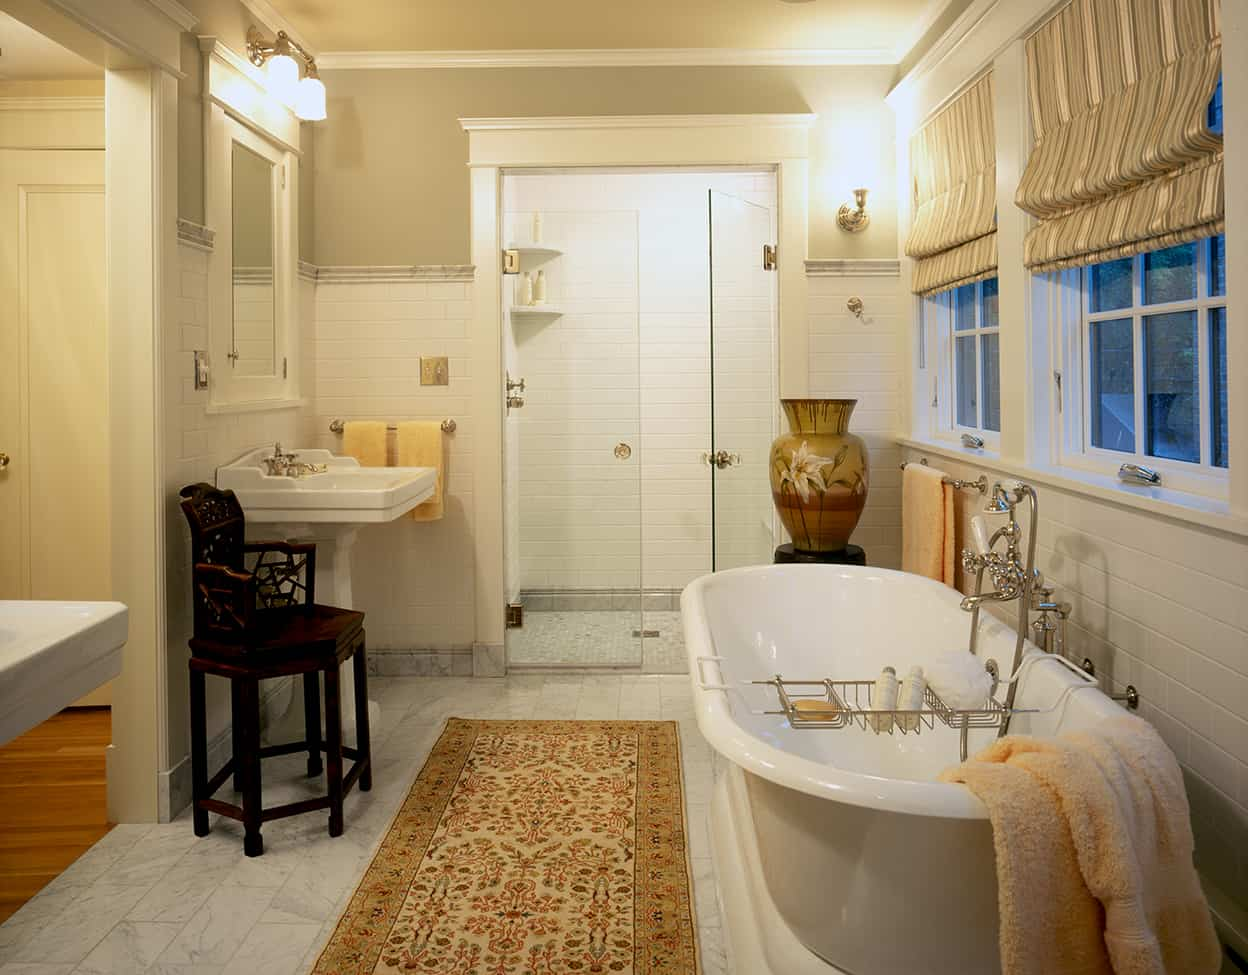 This bathroom is neutral, restful, and very period, but also very functional, with a roll-top bathtub, a generous shower, and two pedestal sinks with medicine cabinets.